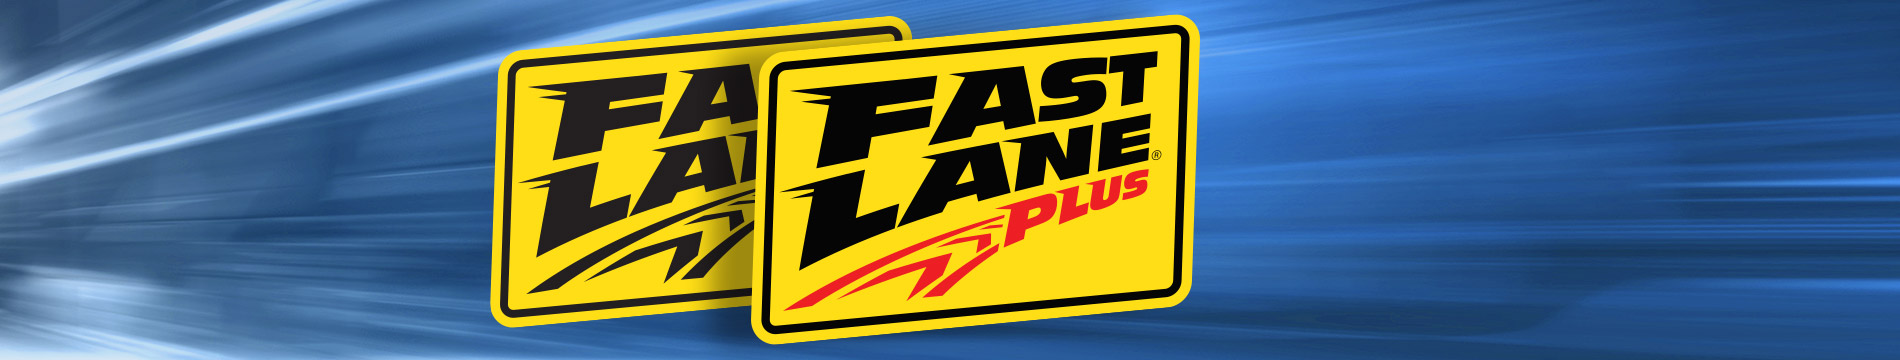 Fast Lane Tickets at Worlds of Fun Amusement Park